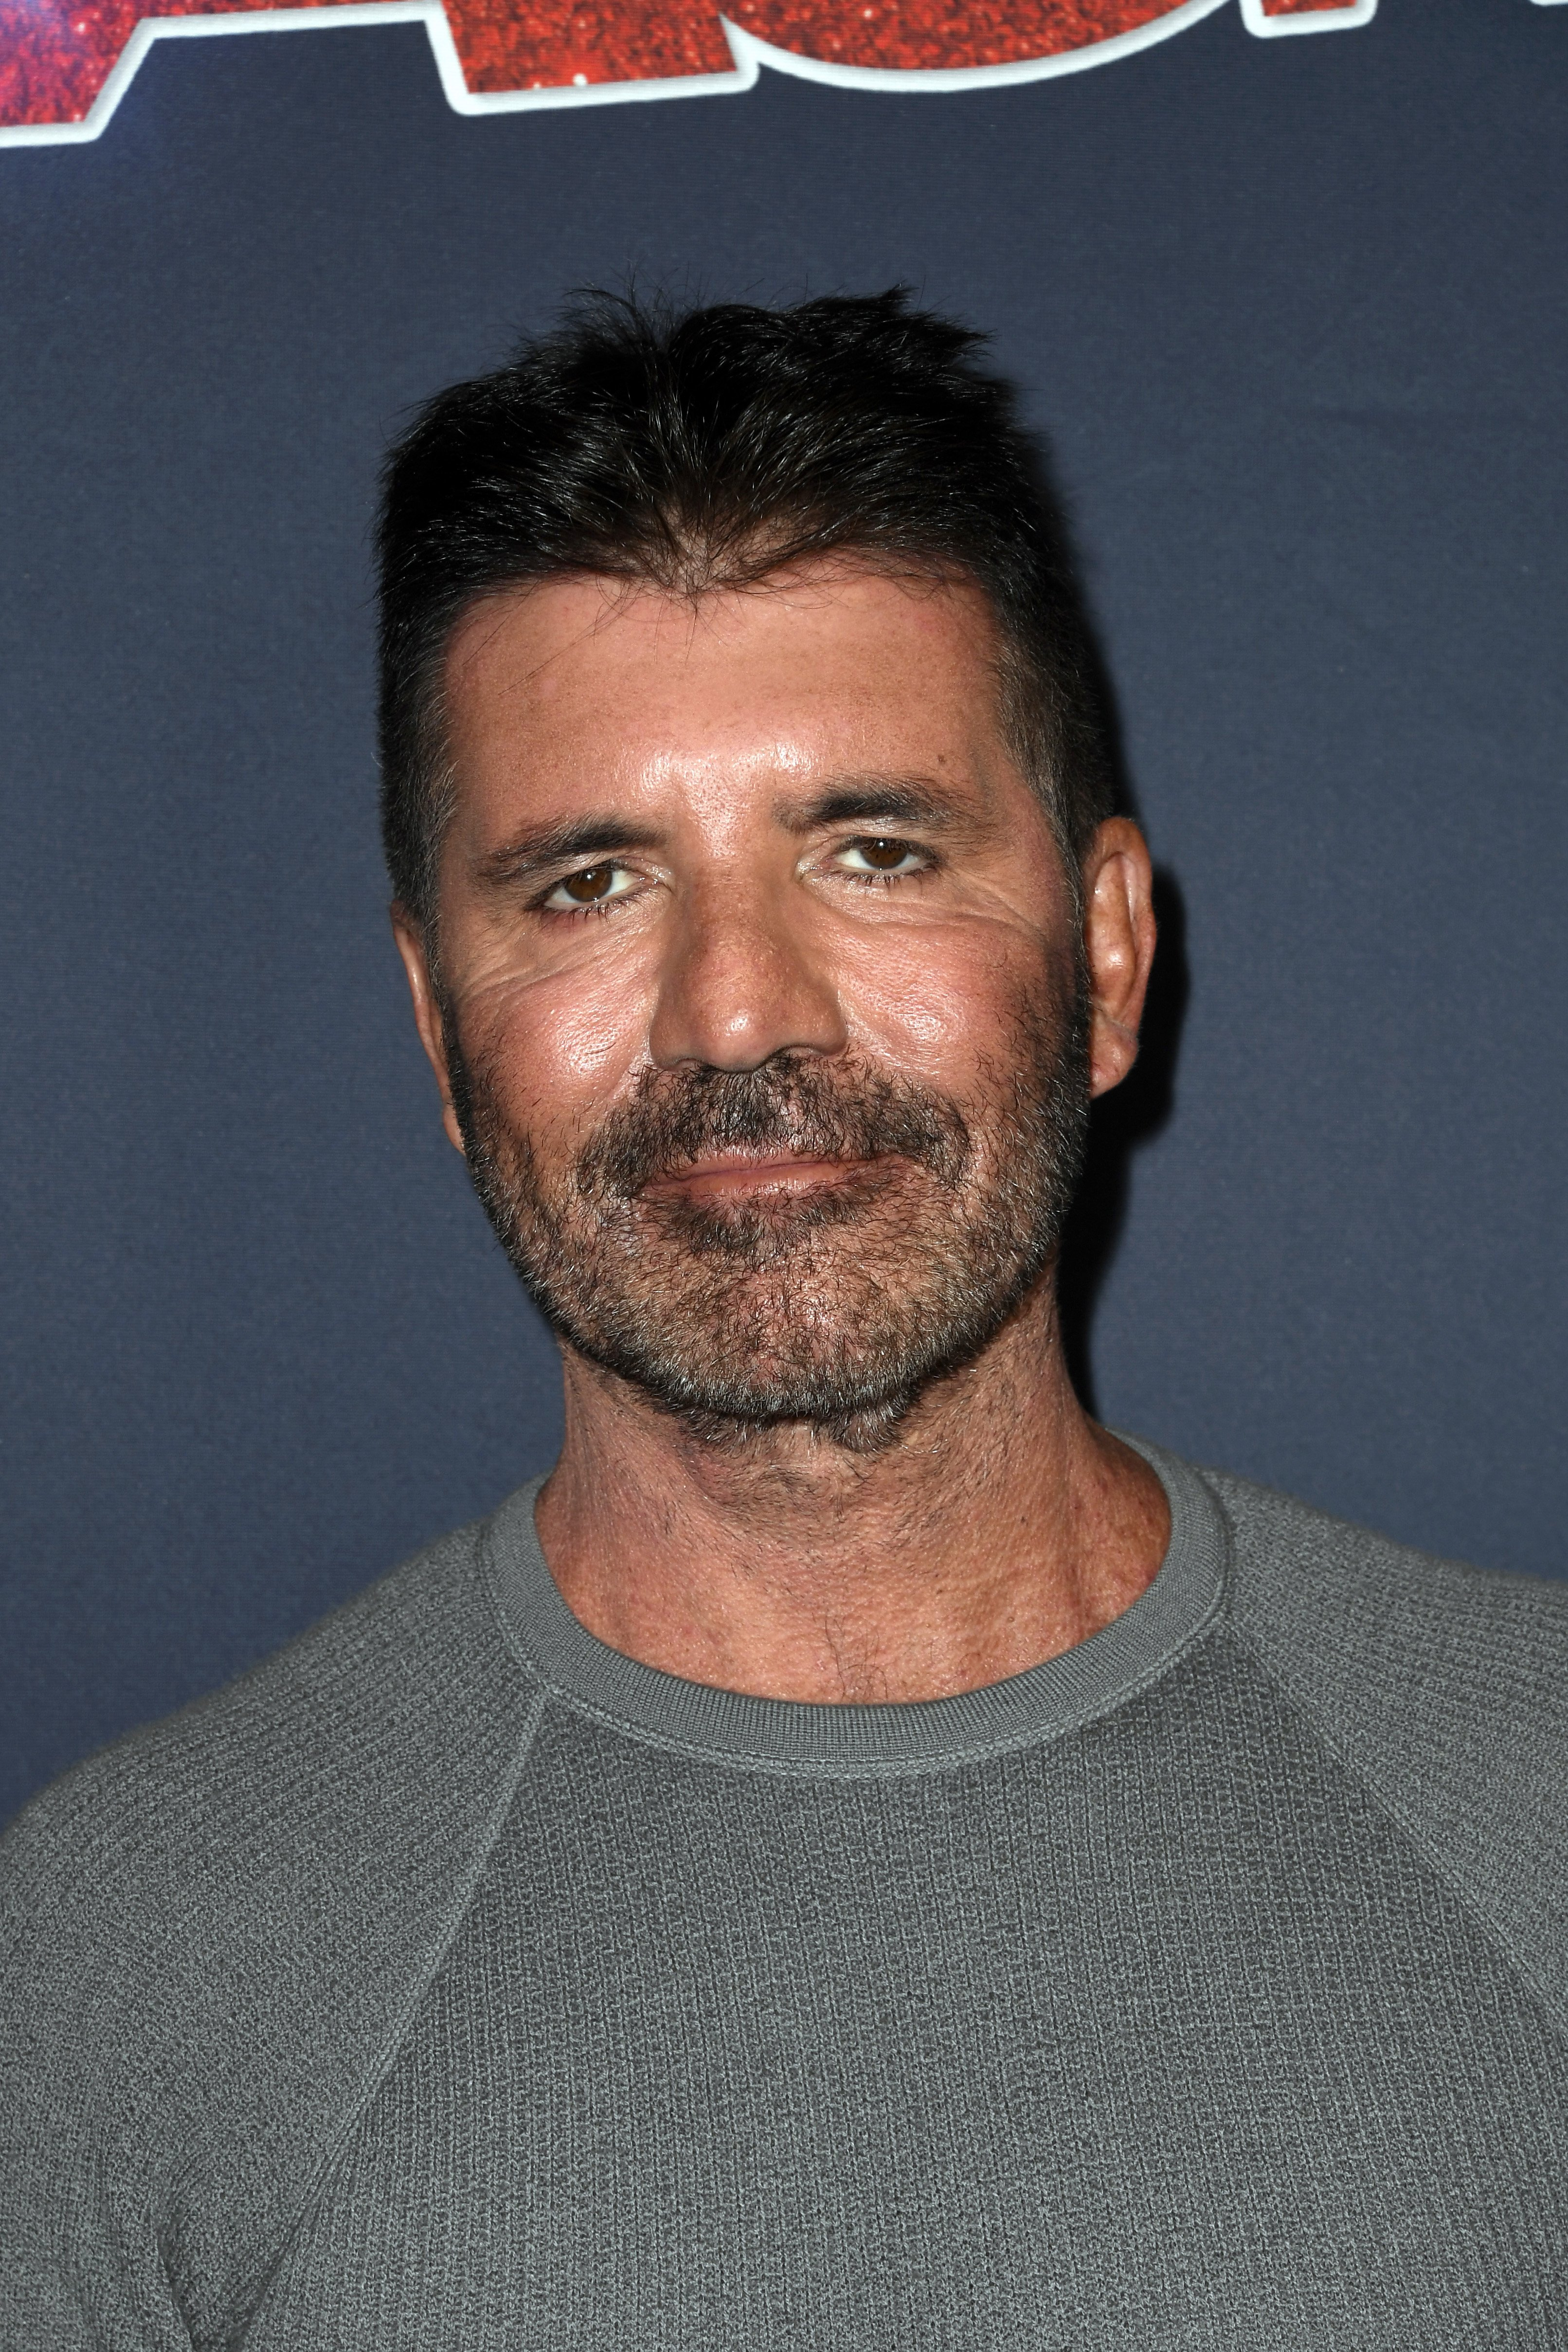 """Simon Cowell attends live show of """"America's Got Talent"""" in Hollywood on August 13, 2019 